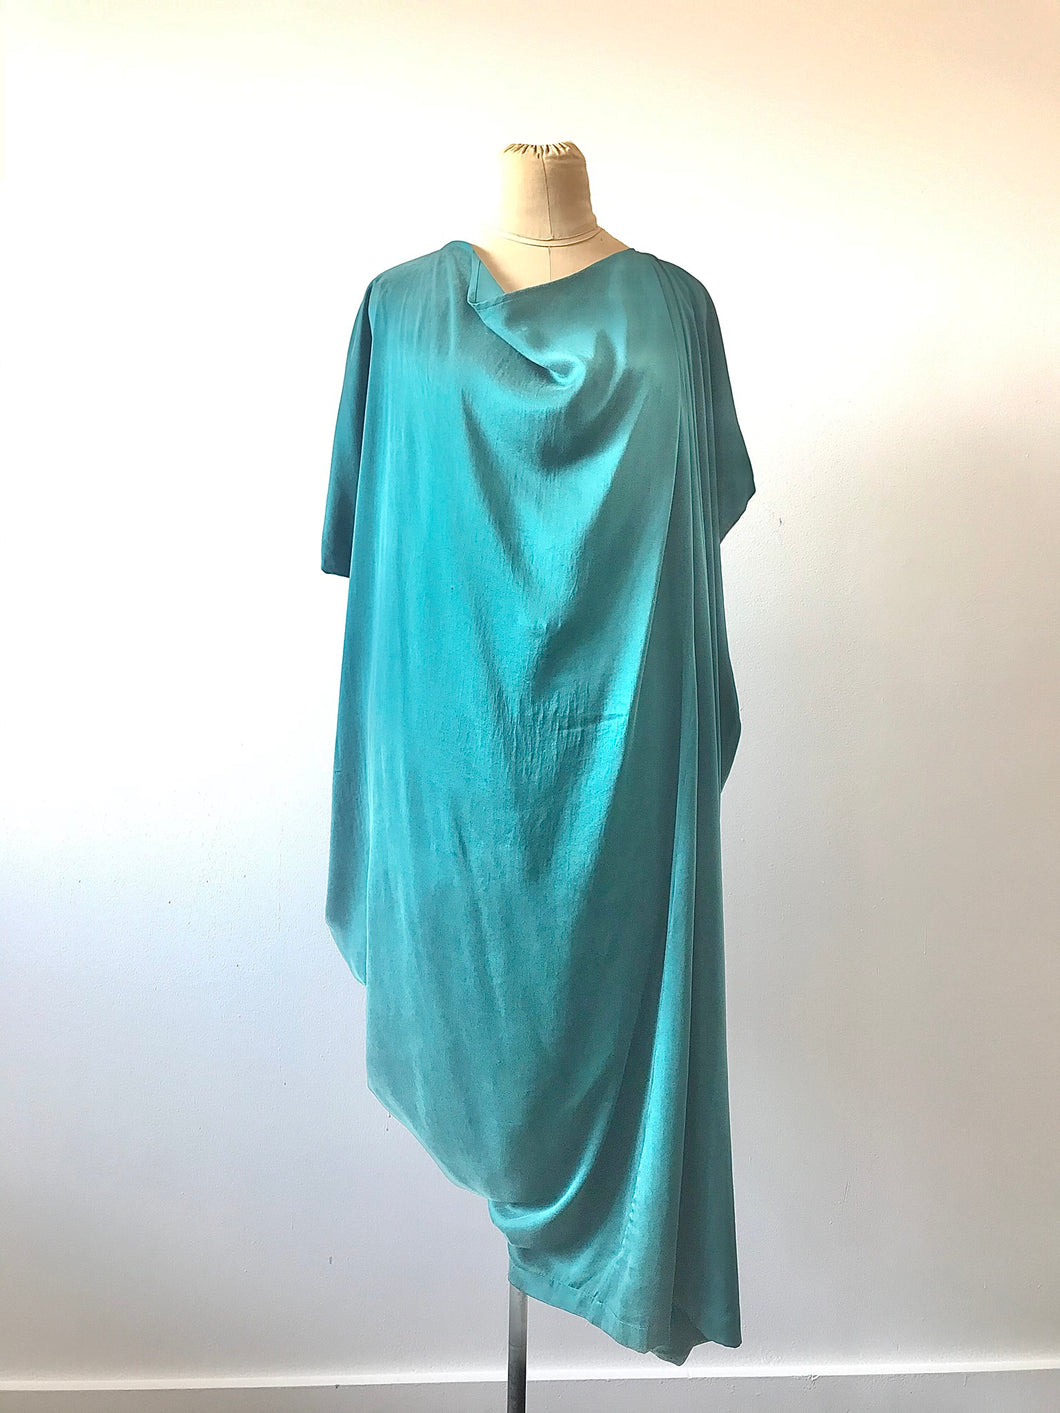 1980's Teal Silk Asymmetrical Drape Dress by Laise Adzer